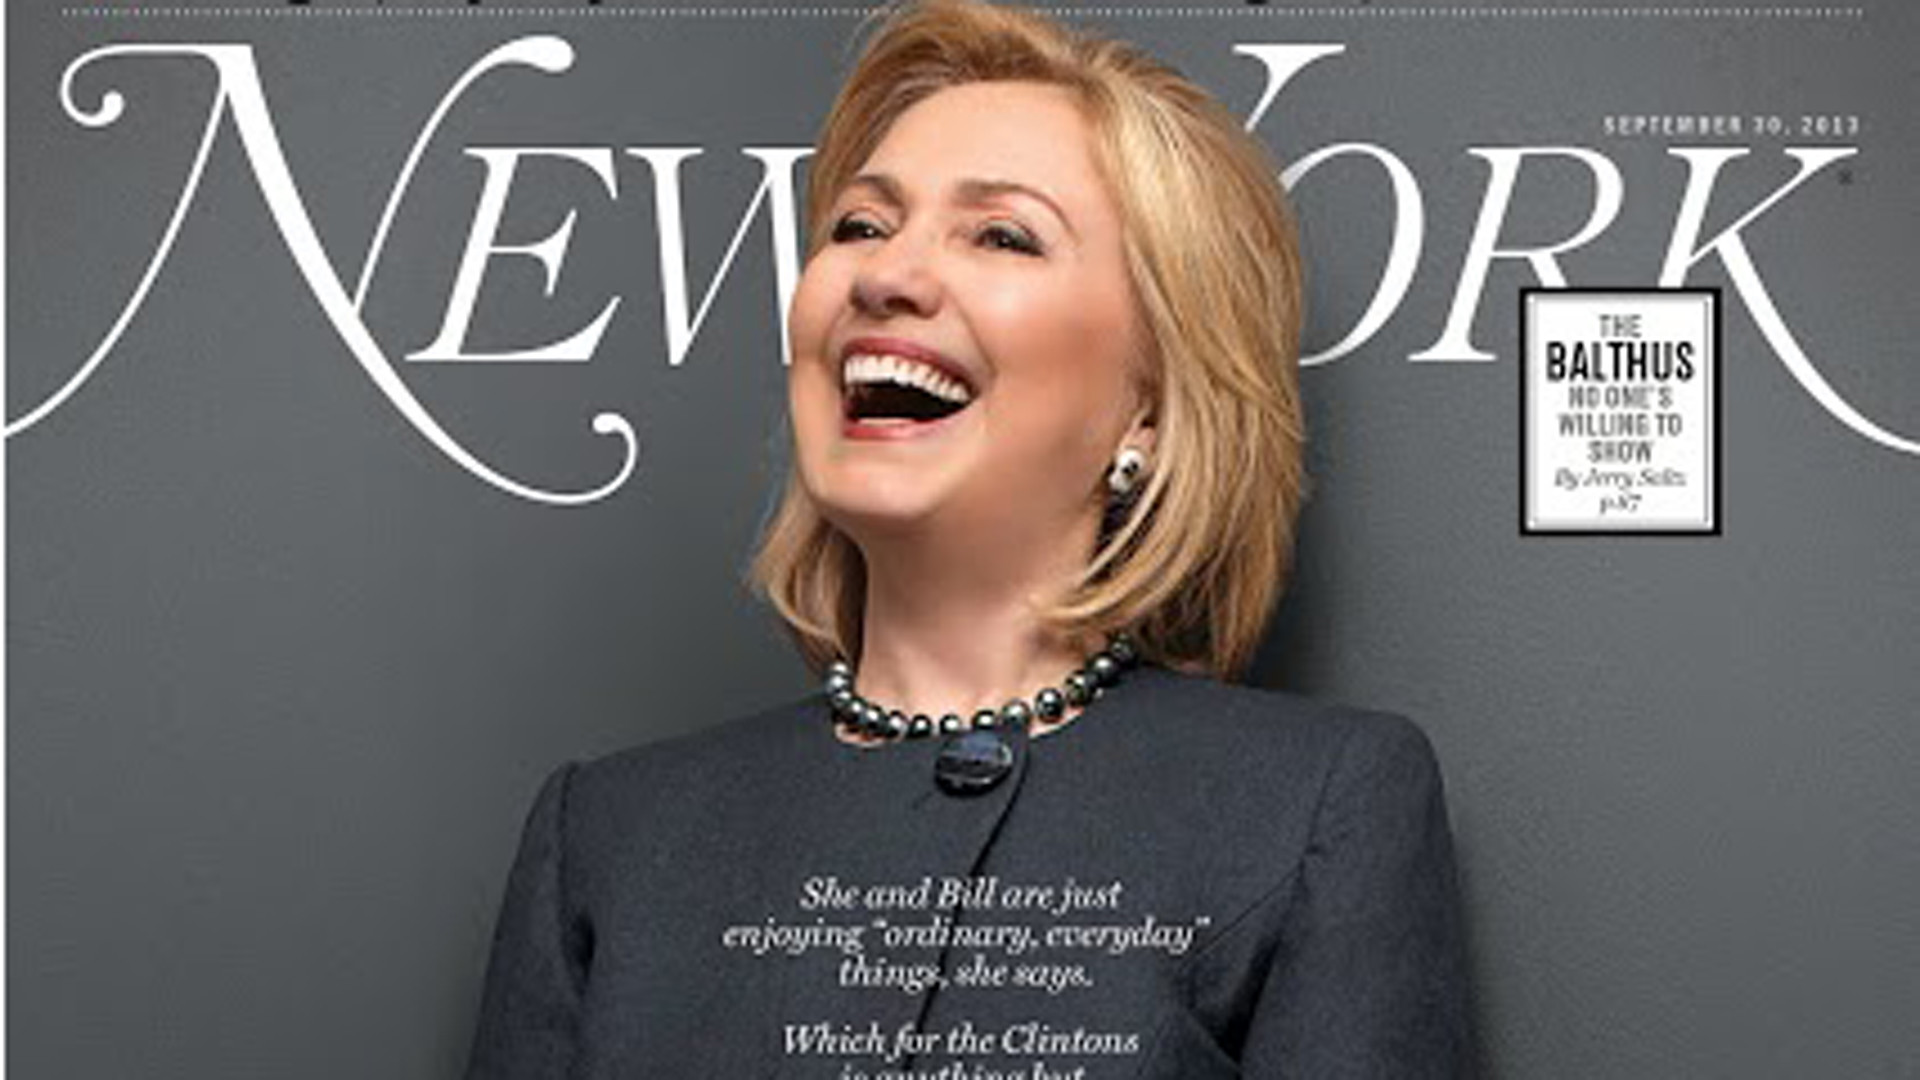 Hillary Clinton appears on the cover of New York magazine's latest .